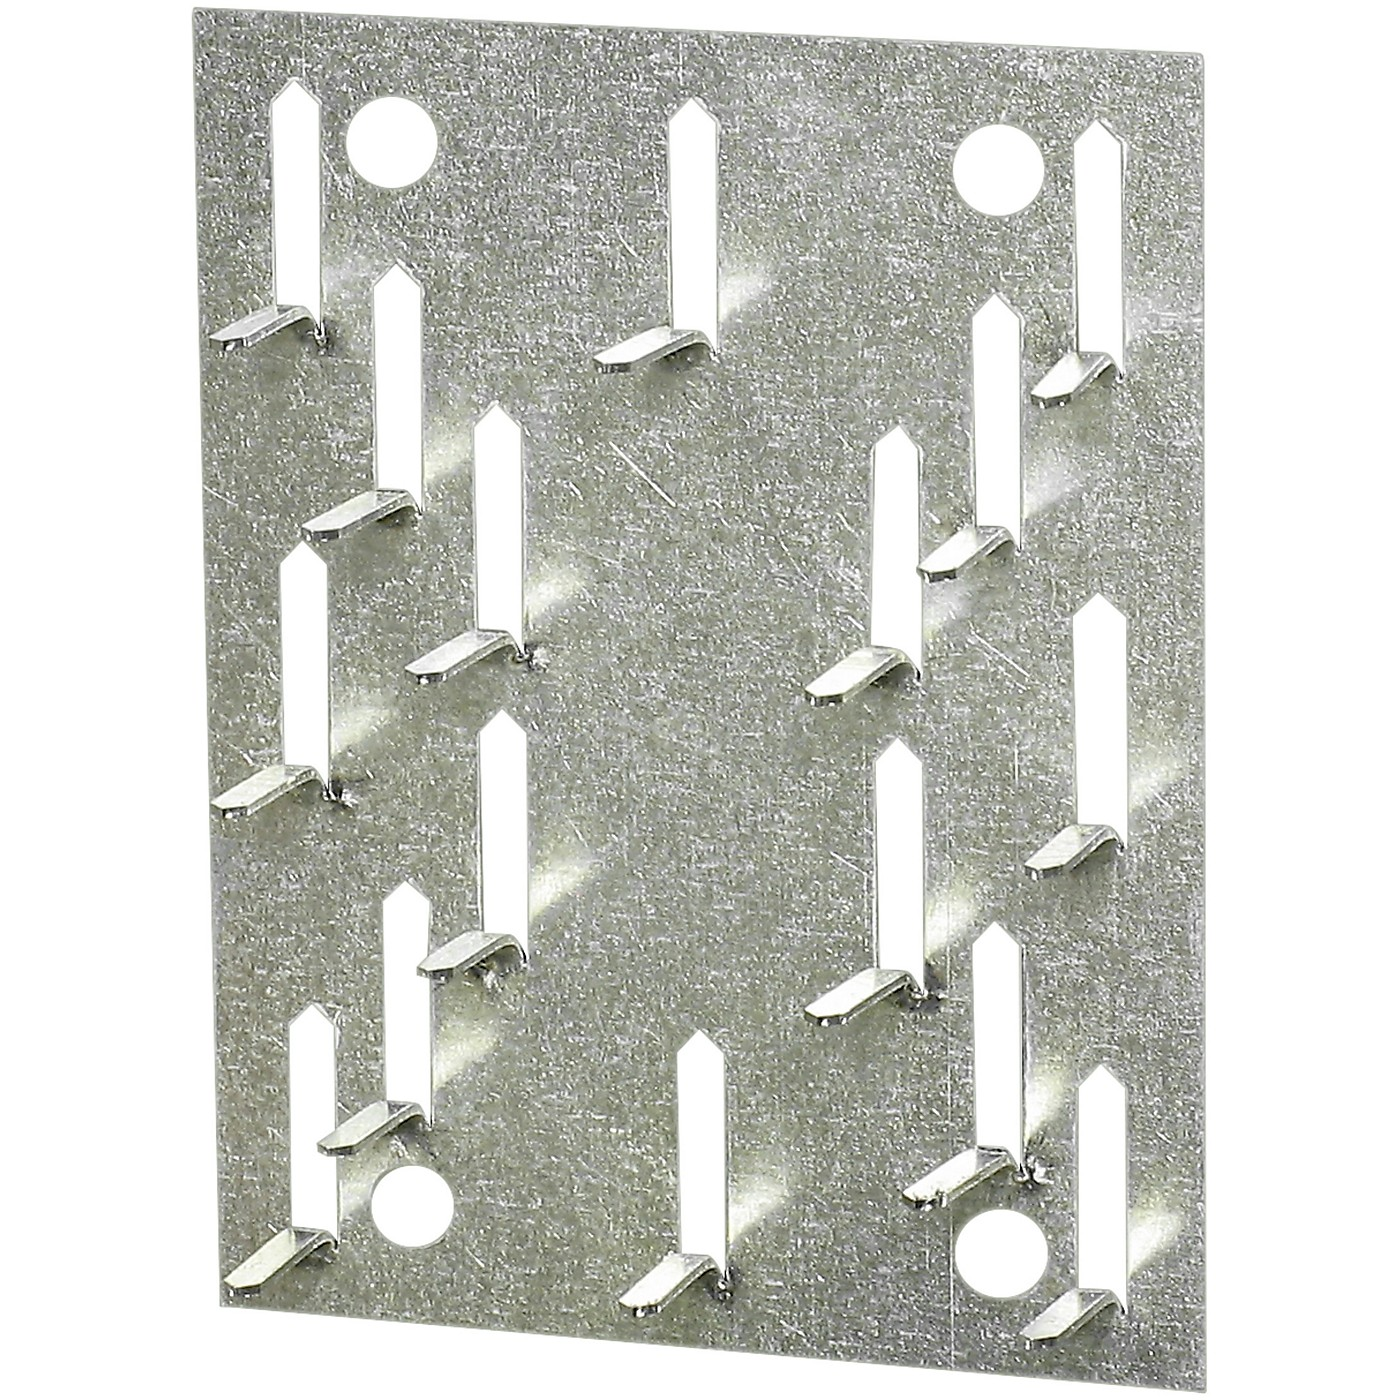 Primacoustic Push-On Impaler for Mounting Broadway Acoustic Panels (24 Pack) thumbnail